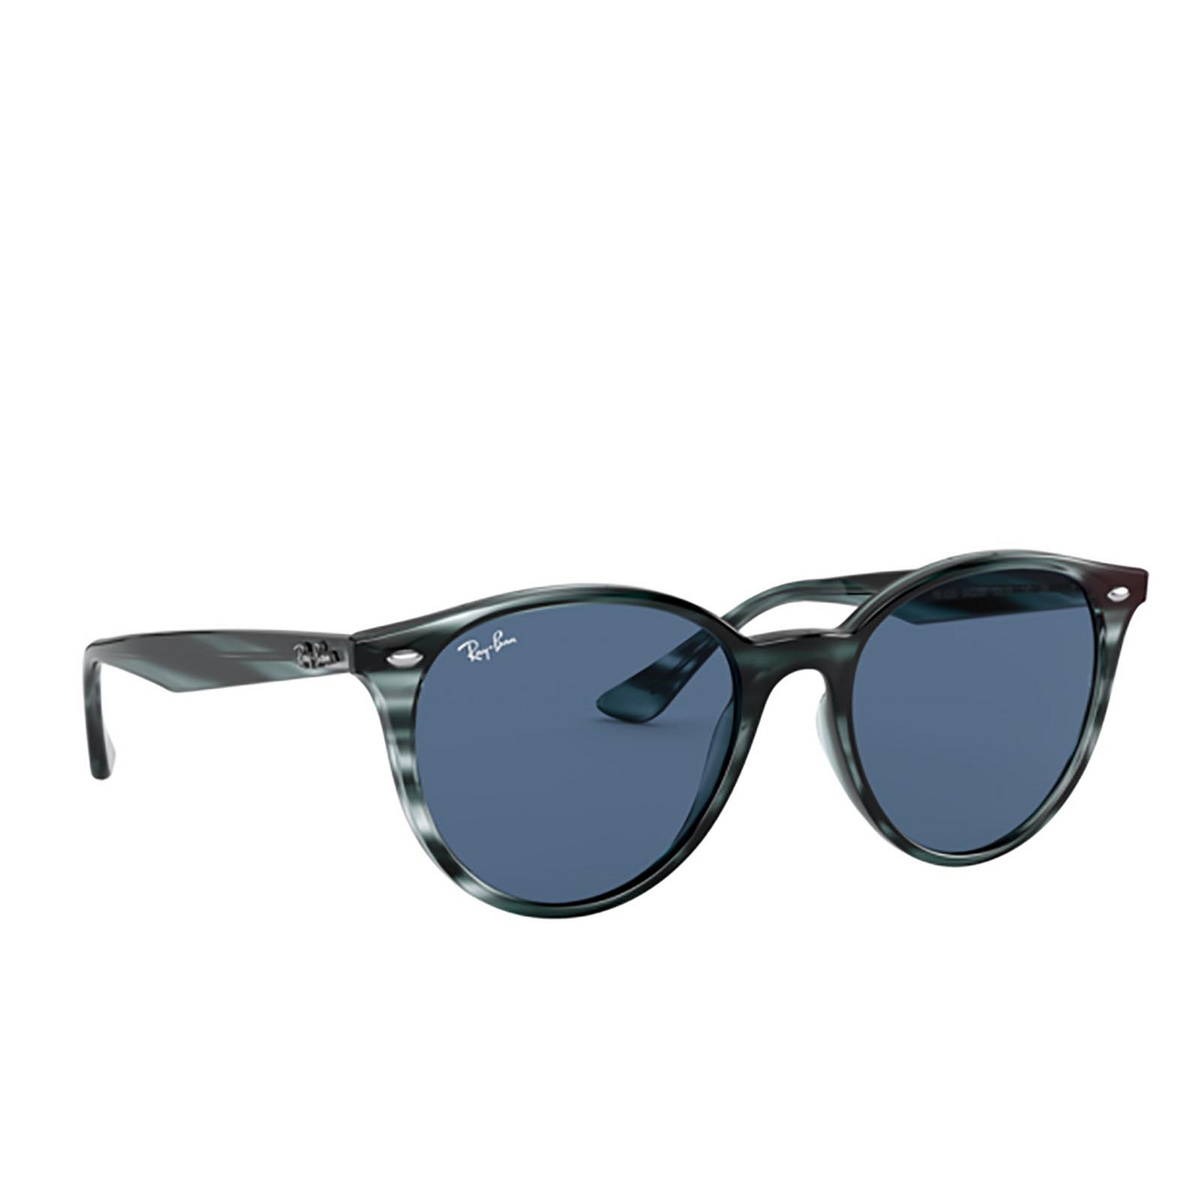 Ray-Ban® Round Sunglasses: RB4305 color Striped Blue Havana 643280 - 2/3.